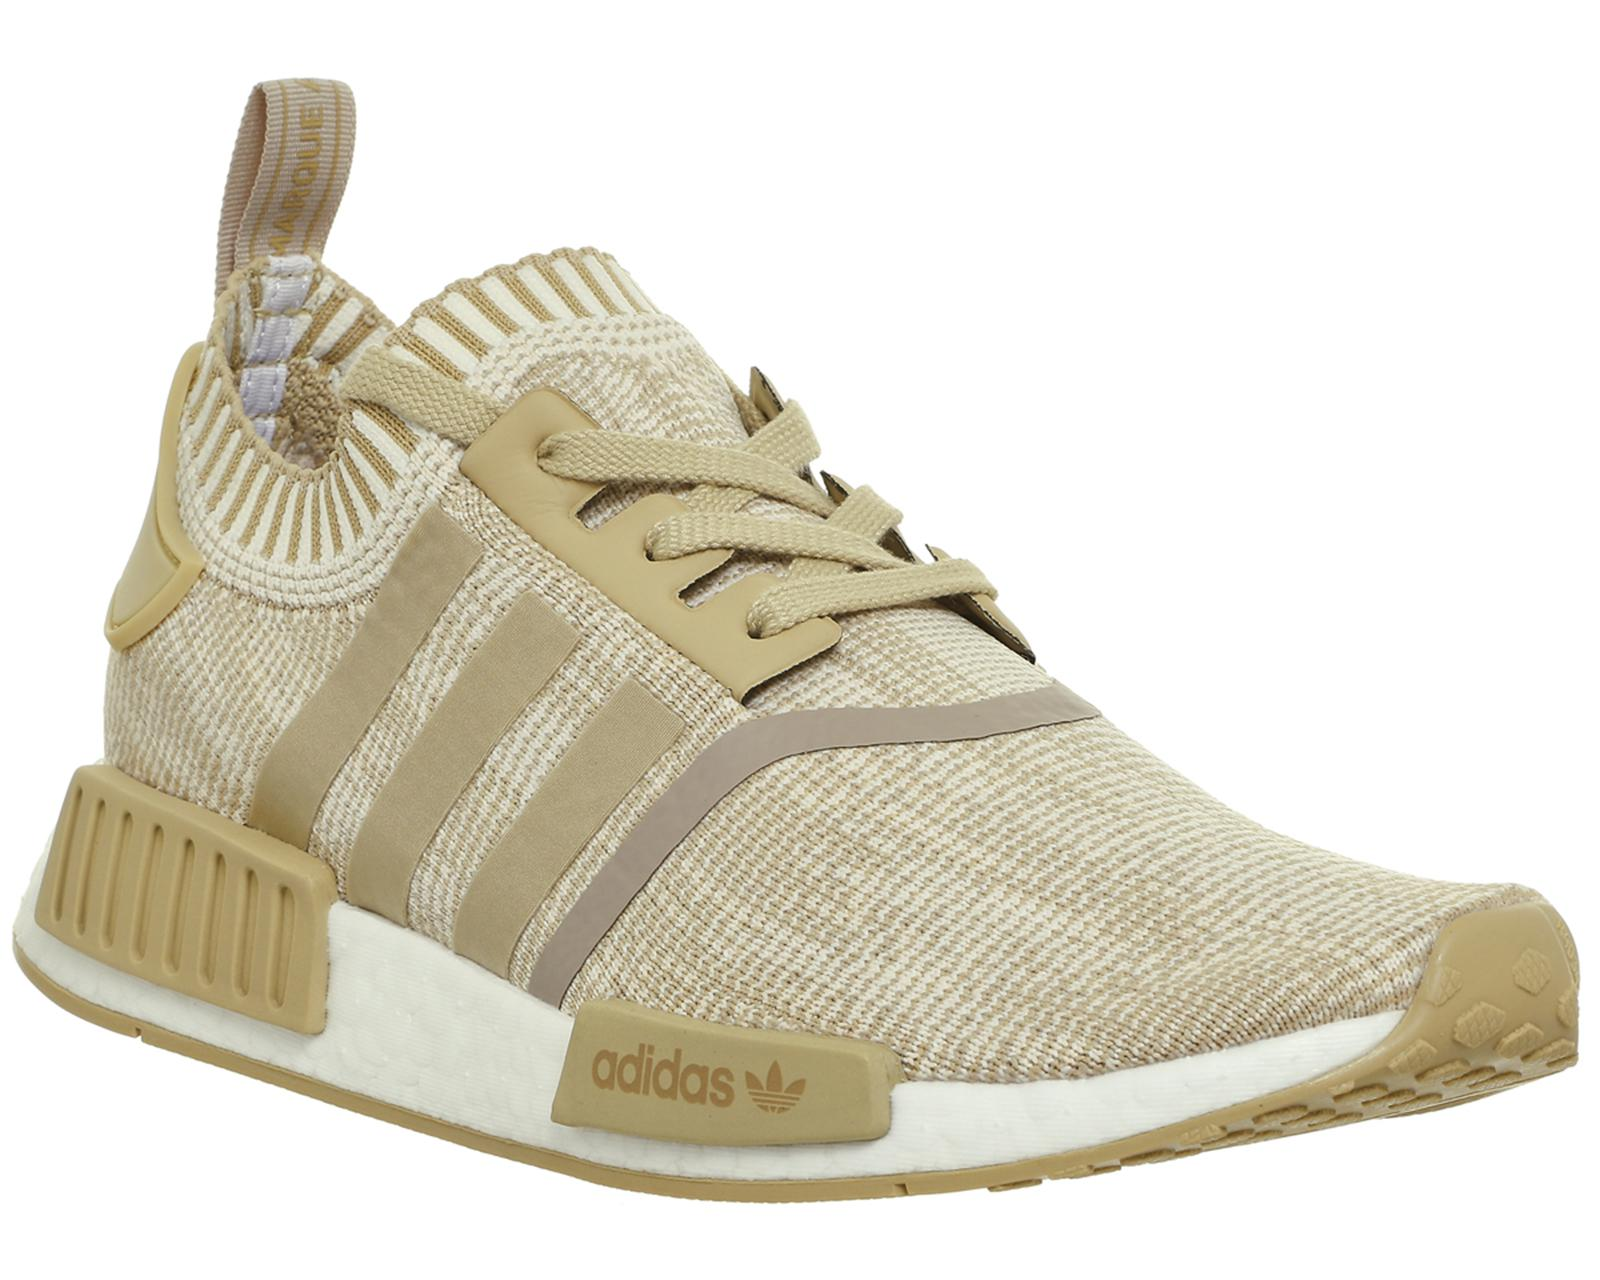 cf55d654e Adidas Nmd R1 Prime Knit in Natural - Lyst